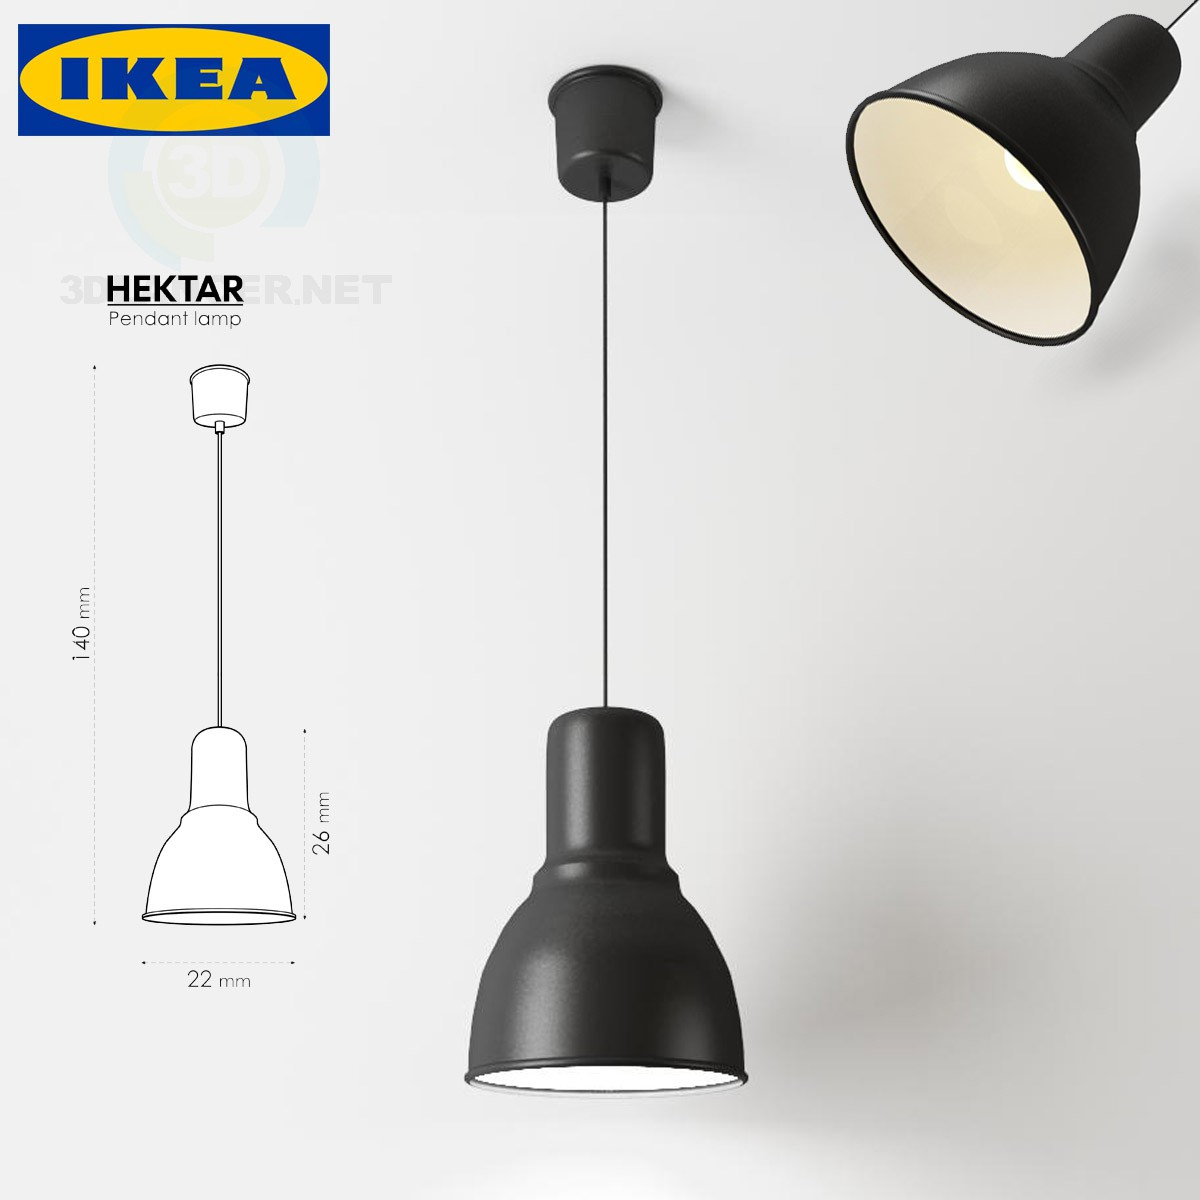 3d modeling HEKTAR_Pendant lamp model free download